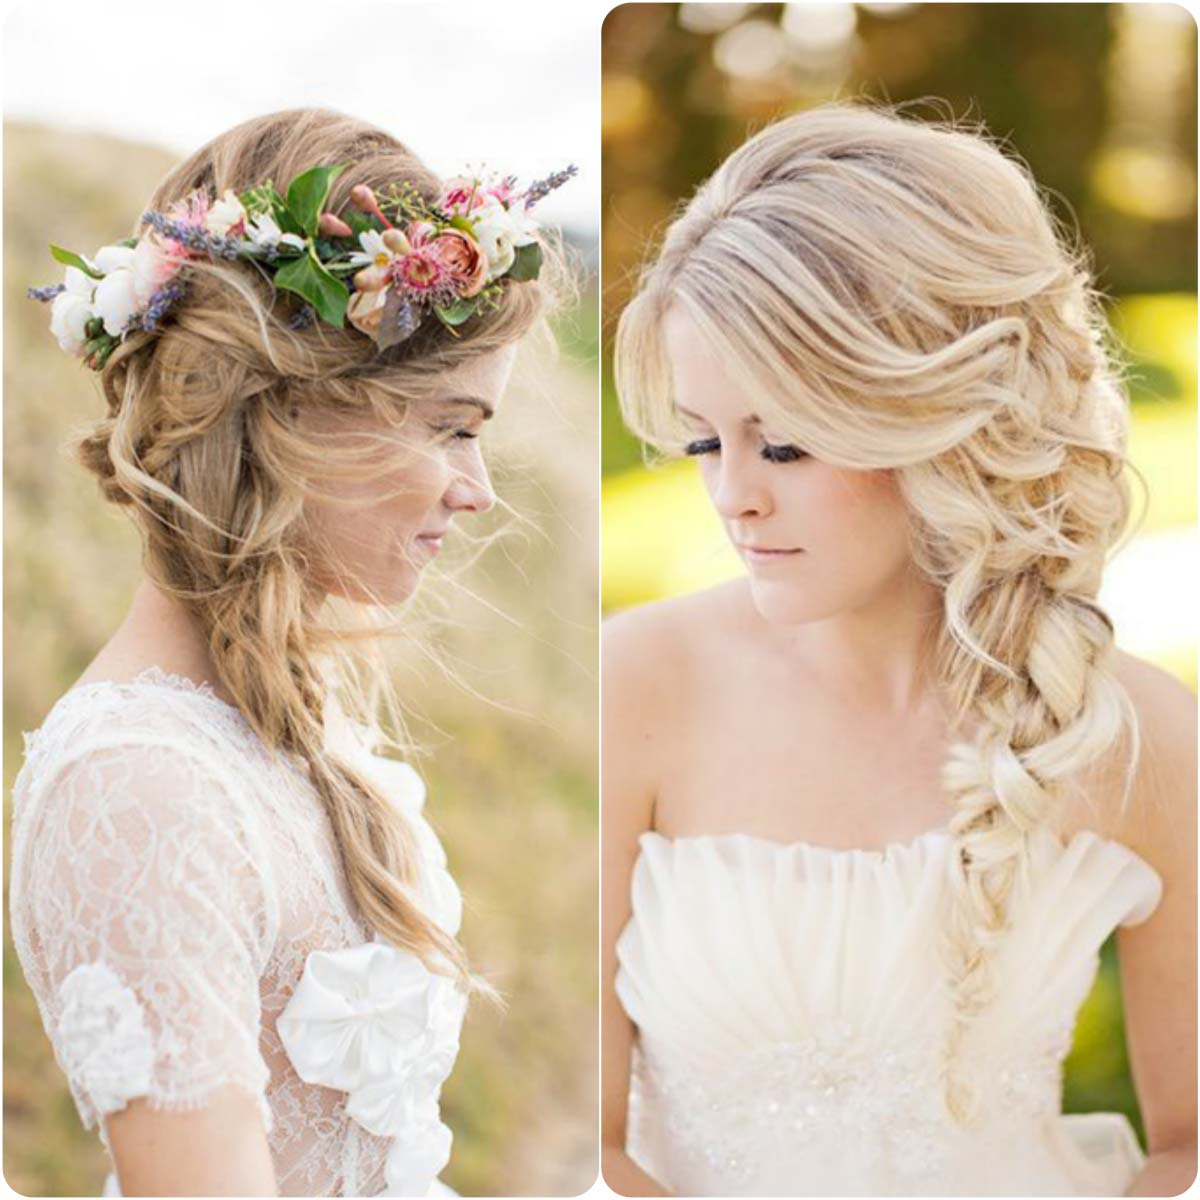 20 Best Wedding Braided Hairstyles For bridals 2016-2017